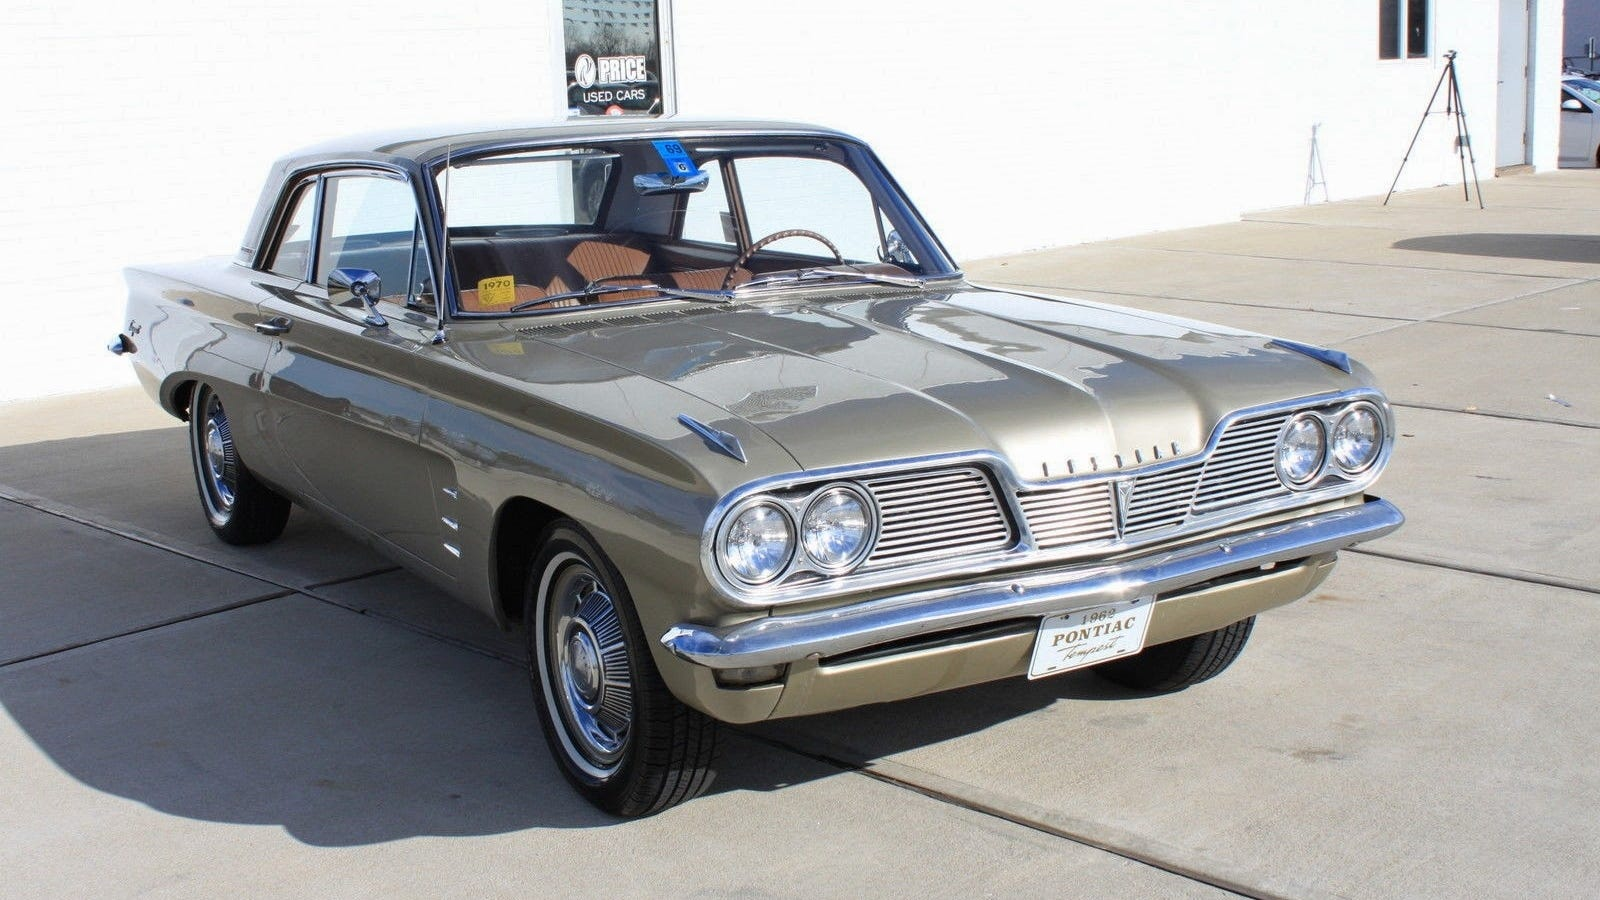 Who Stole 4 Cylinders From This 1962 Pontiac Tempest